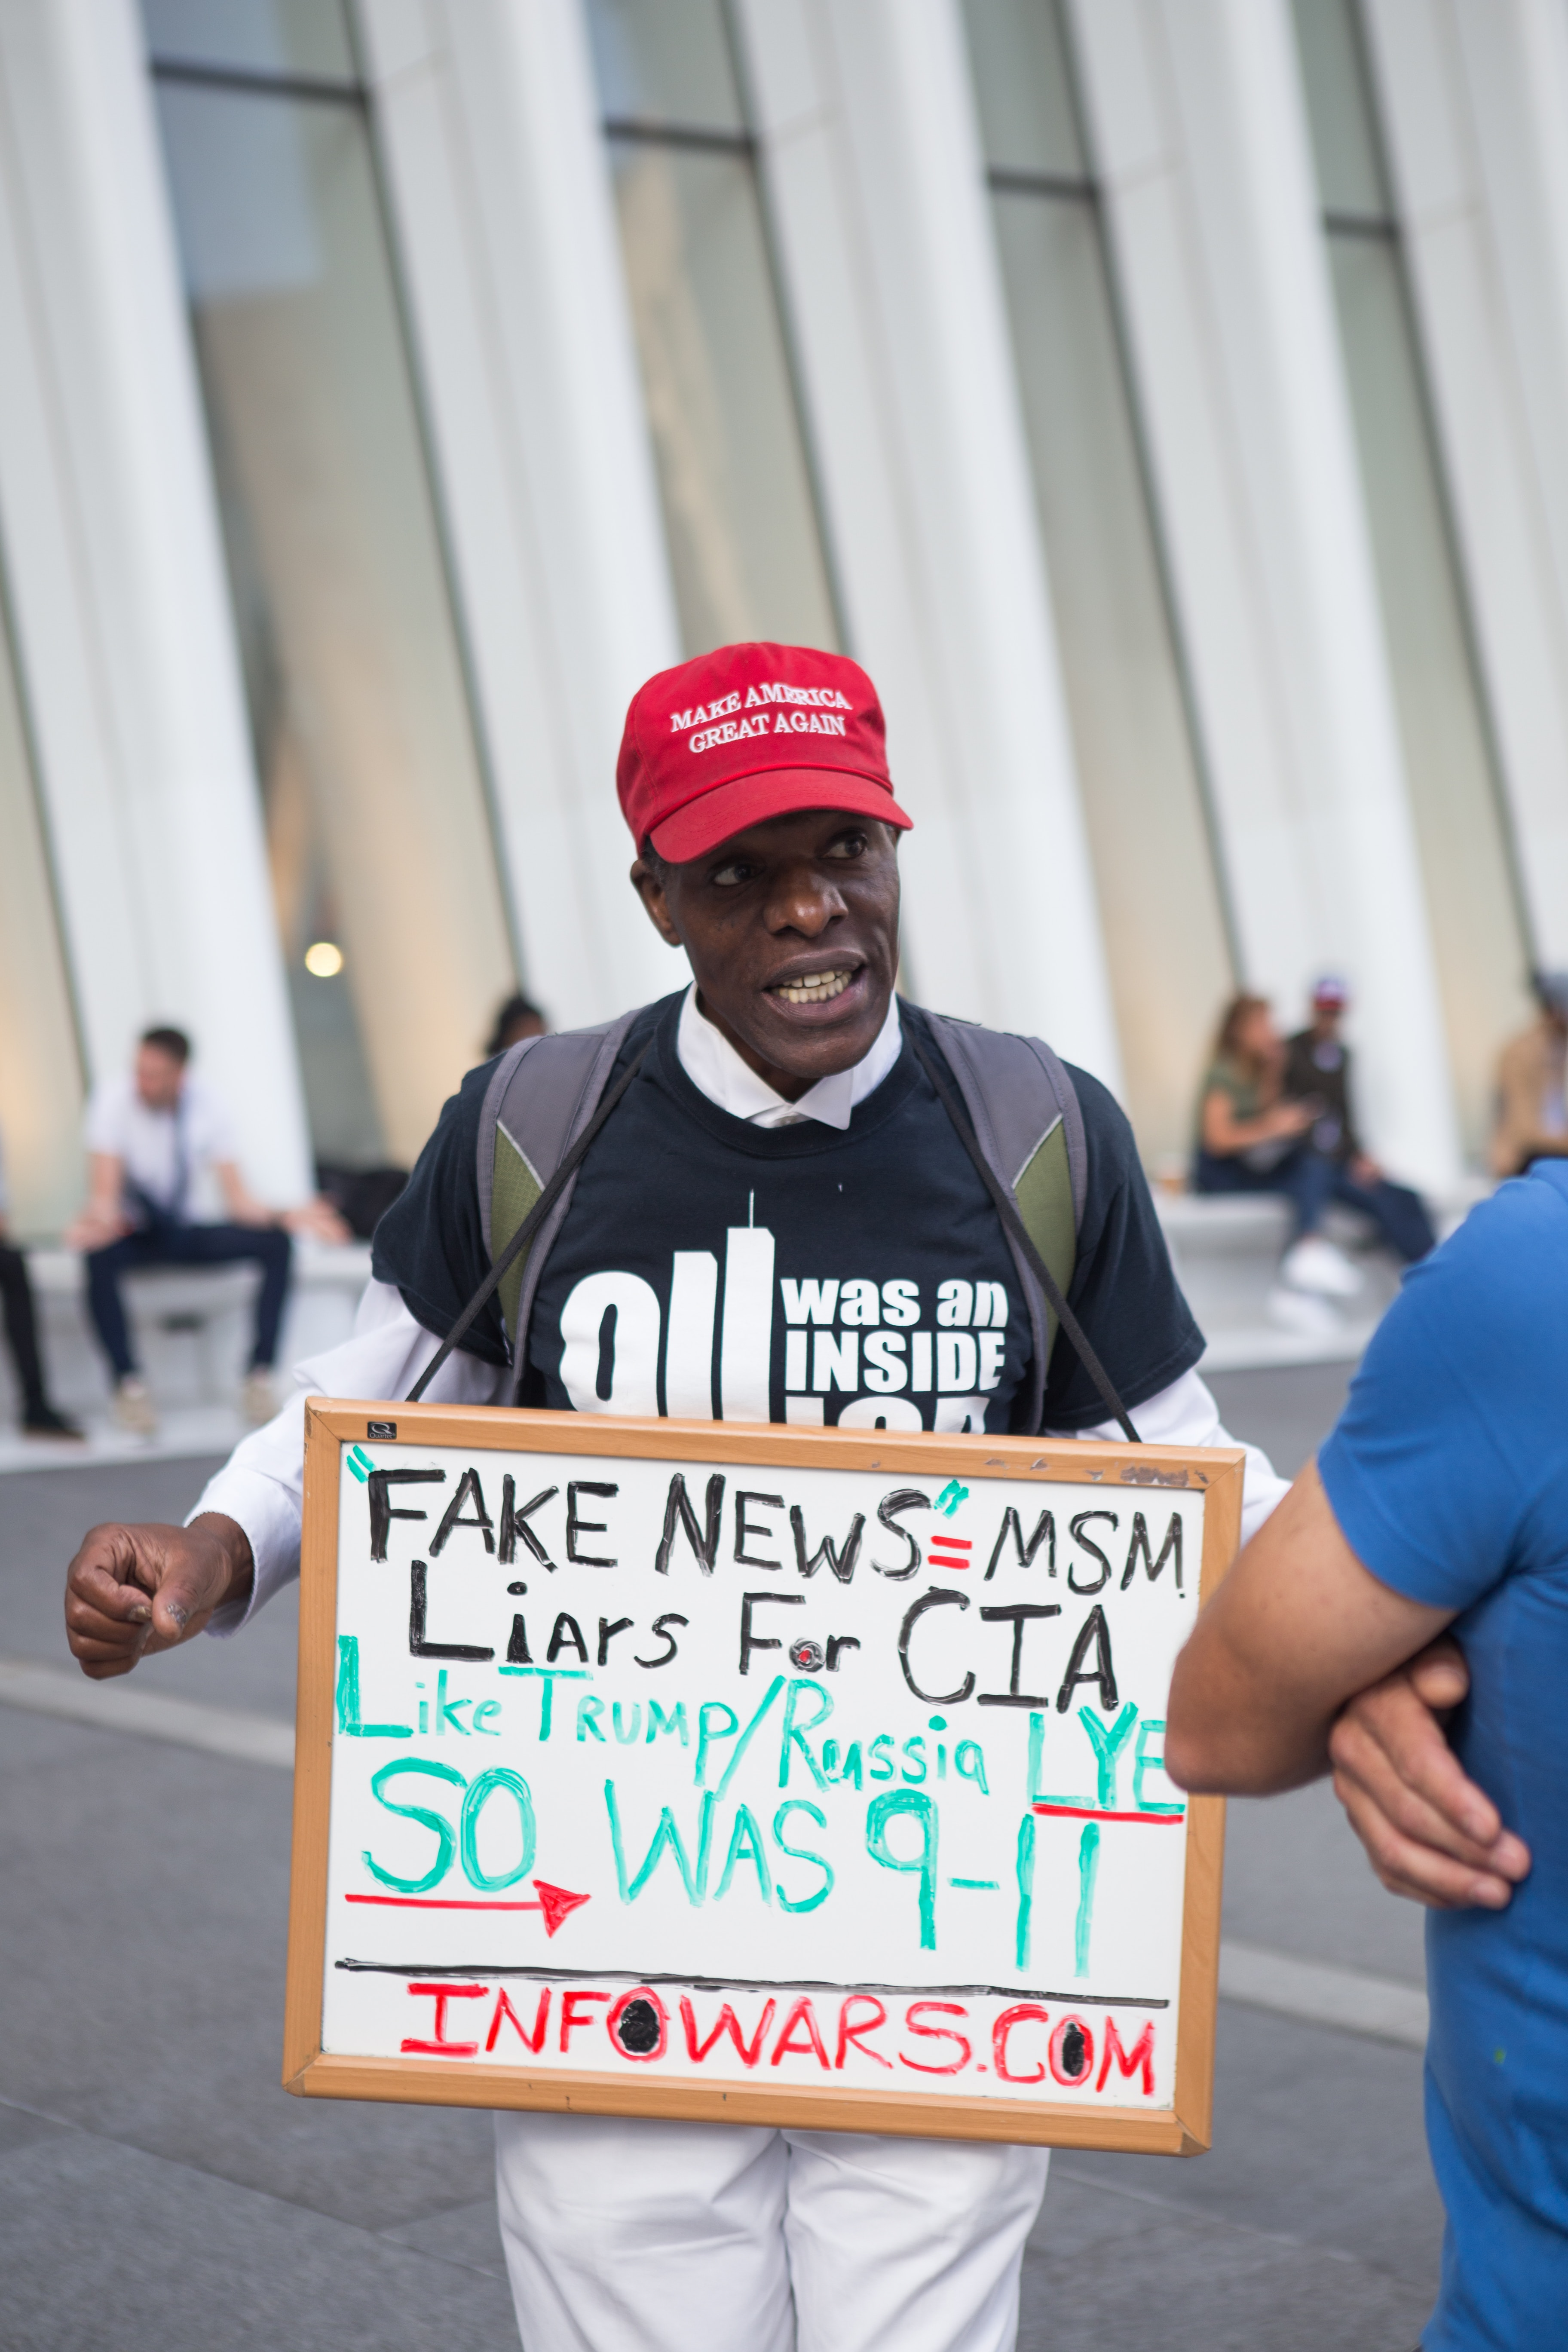 Man holding a sign with conspiracy theories wearing a Make America Great Again hat / Photo credit: Capturing the human heart on Unsplash